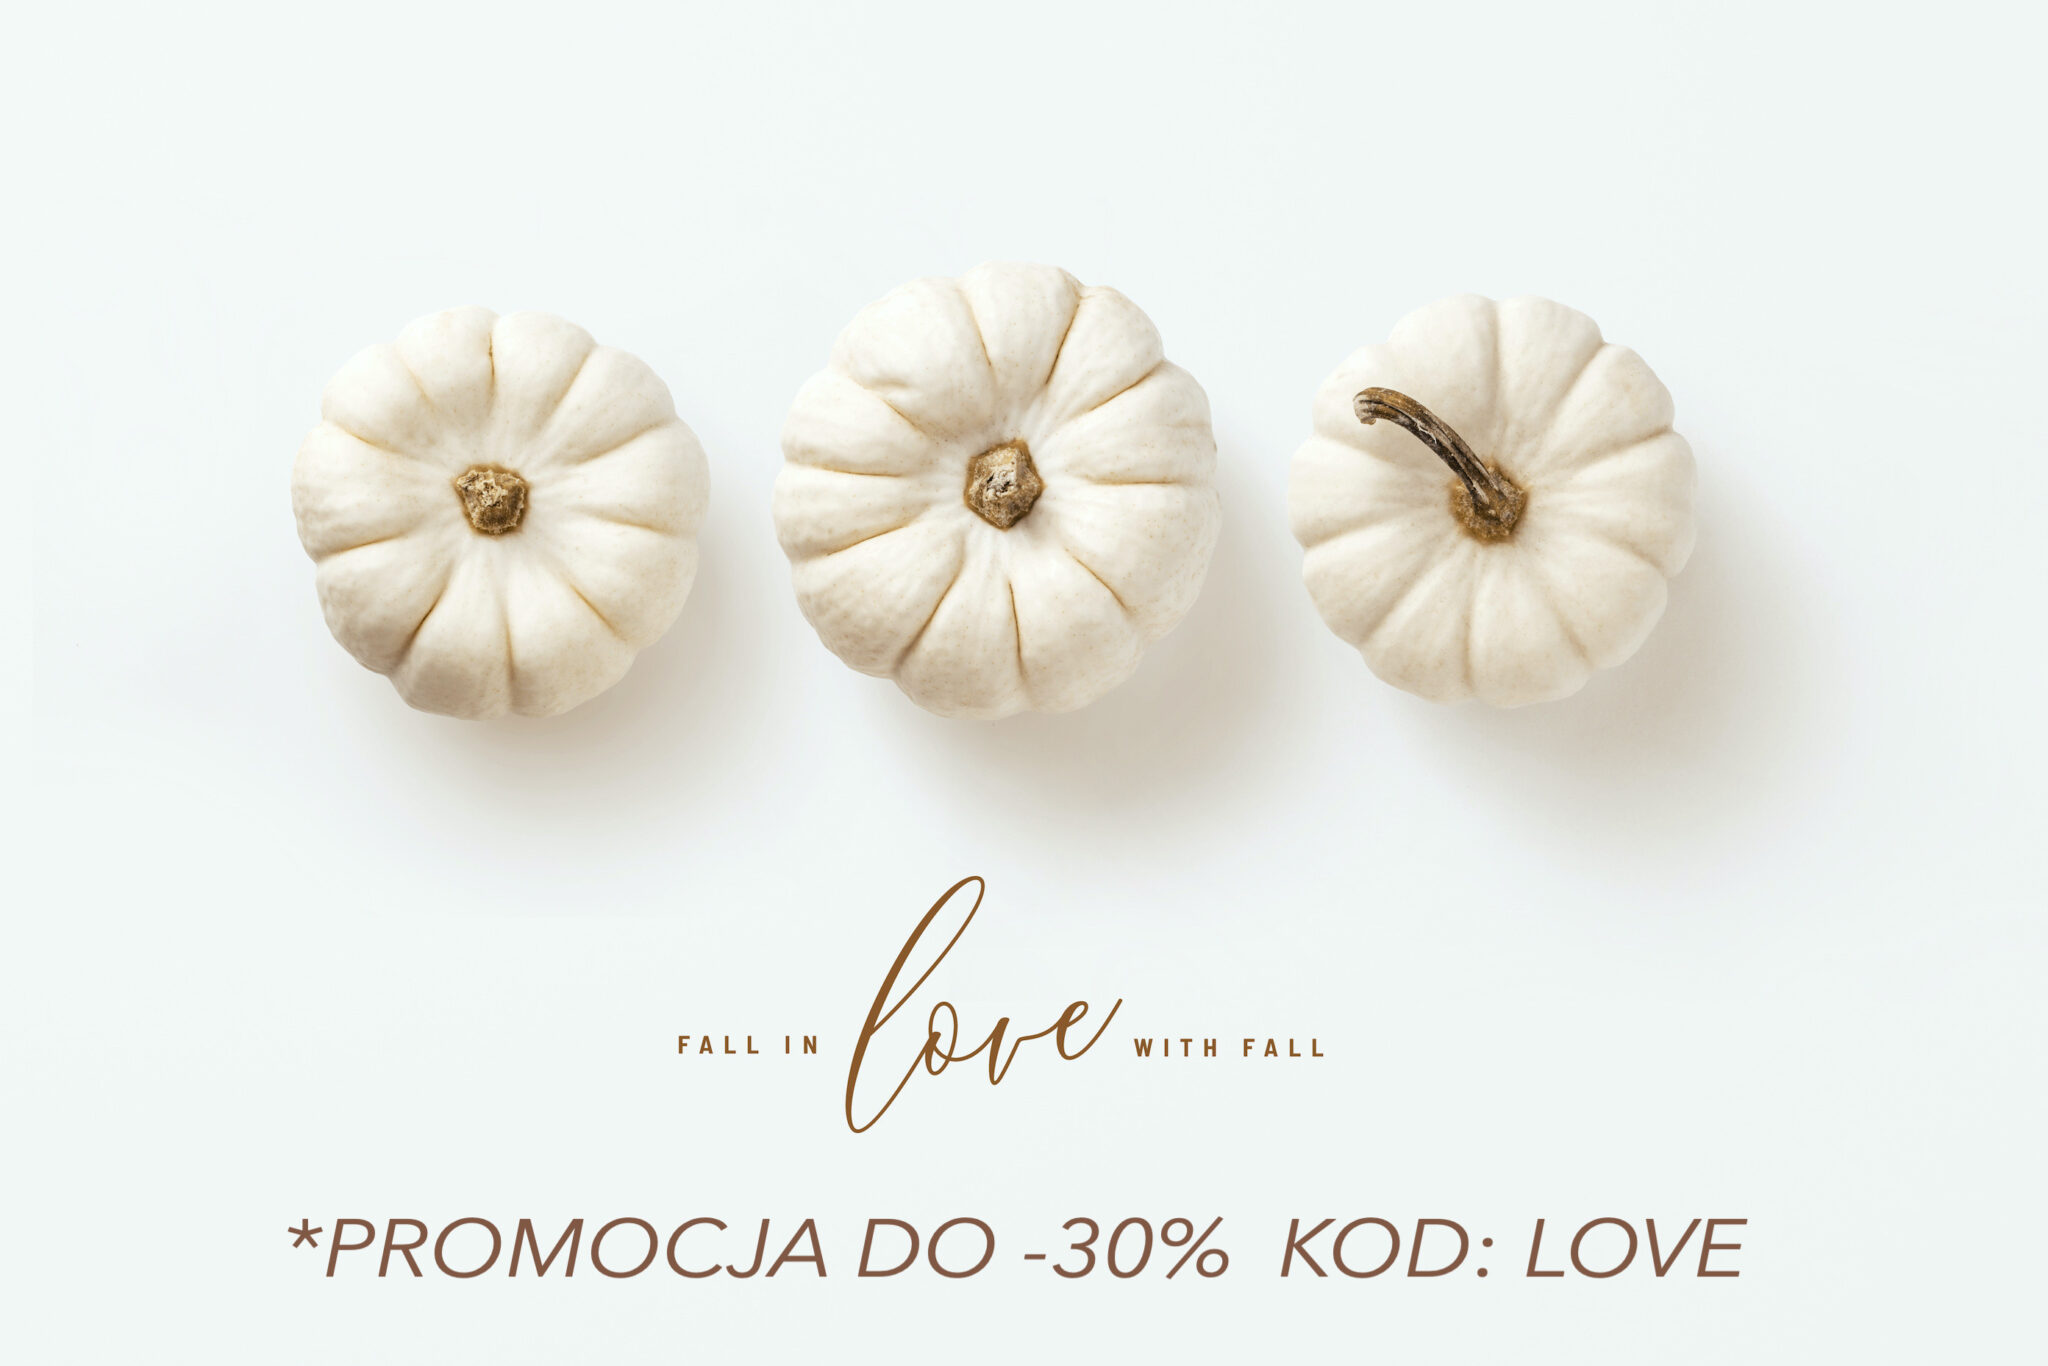 PROMOCJA DO -30% W LOVE BY SANDRO